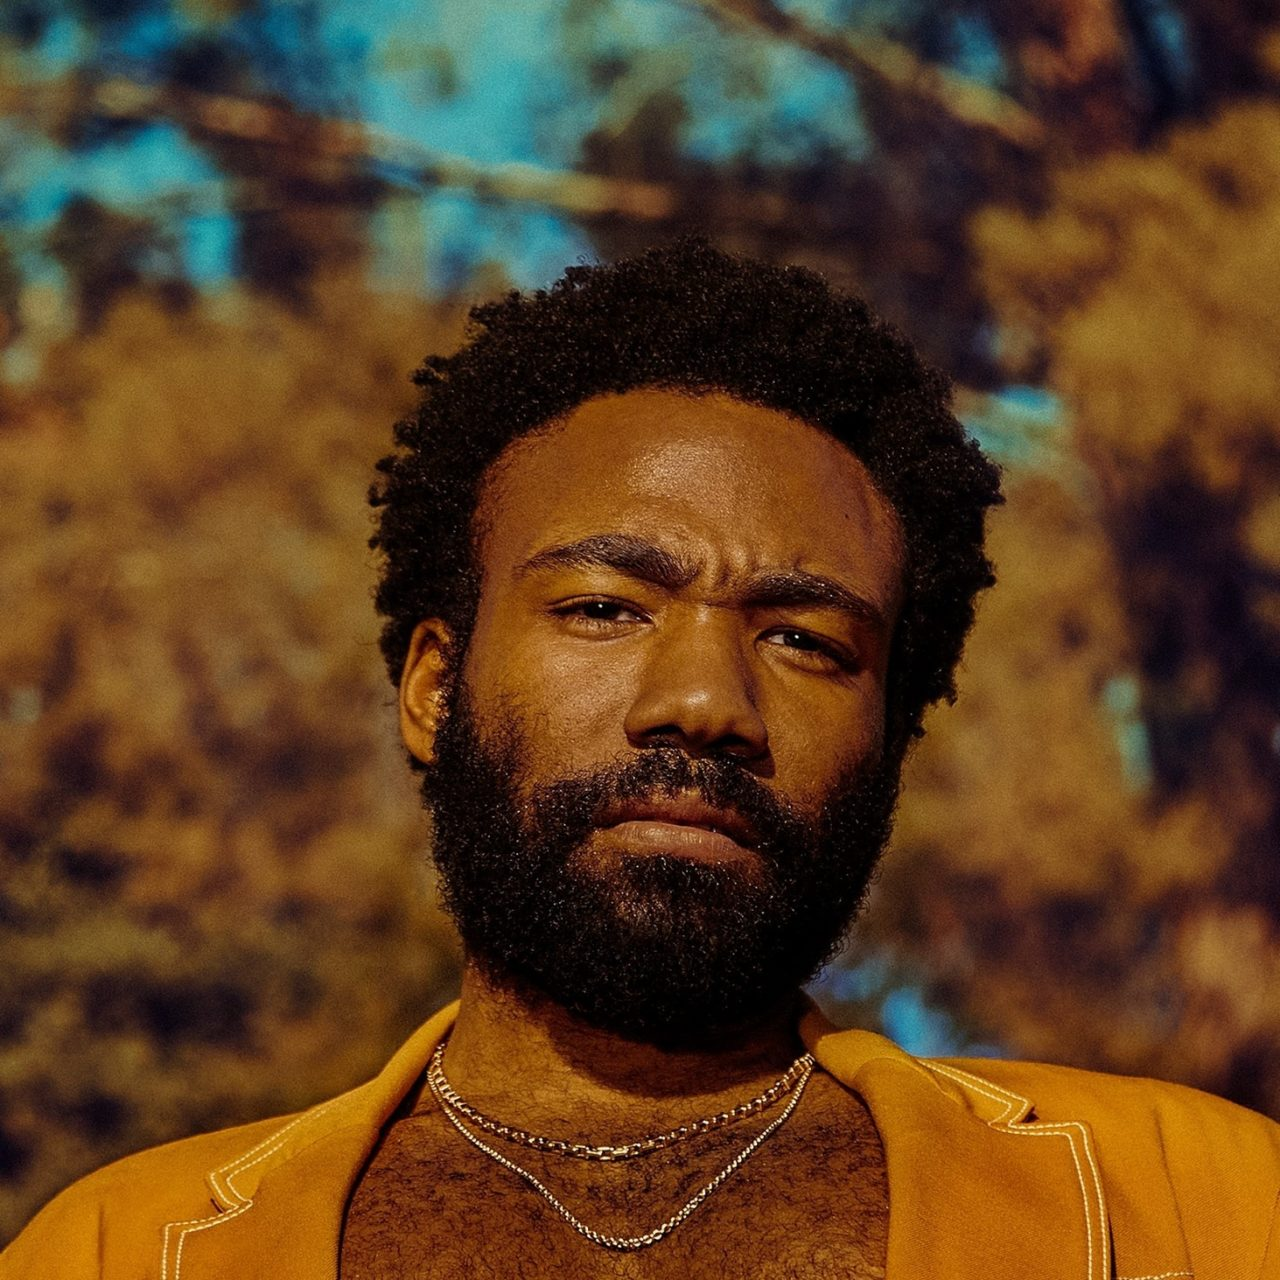 https://thesubmarine.it/wp-content/uploads/2018/07/childish-1280x1280.jpg